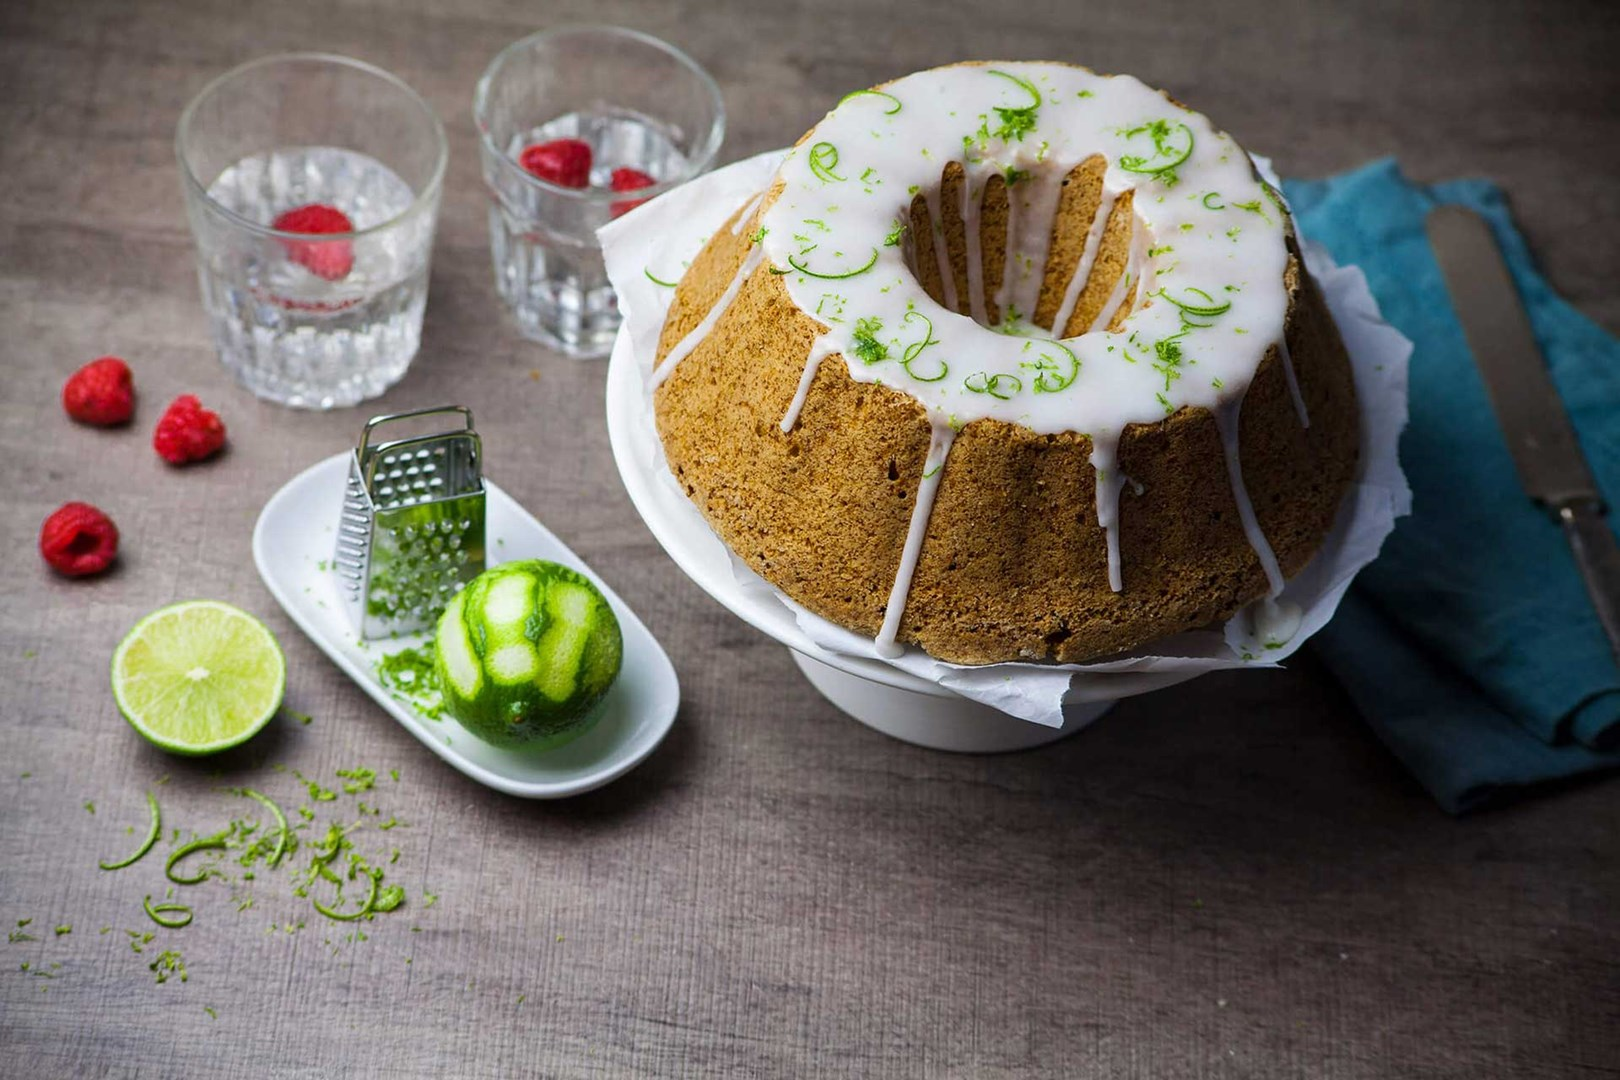 Vegan sponge cake with lime glaze served on a plate